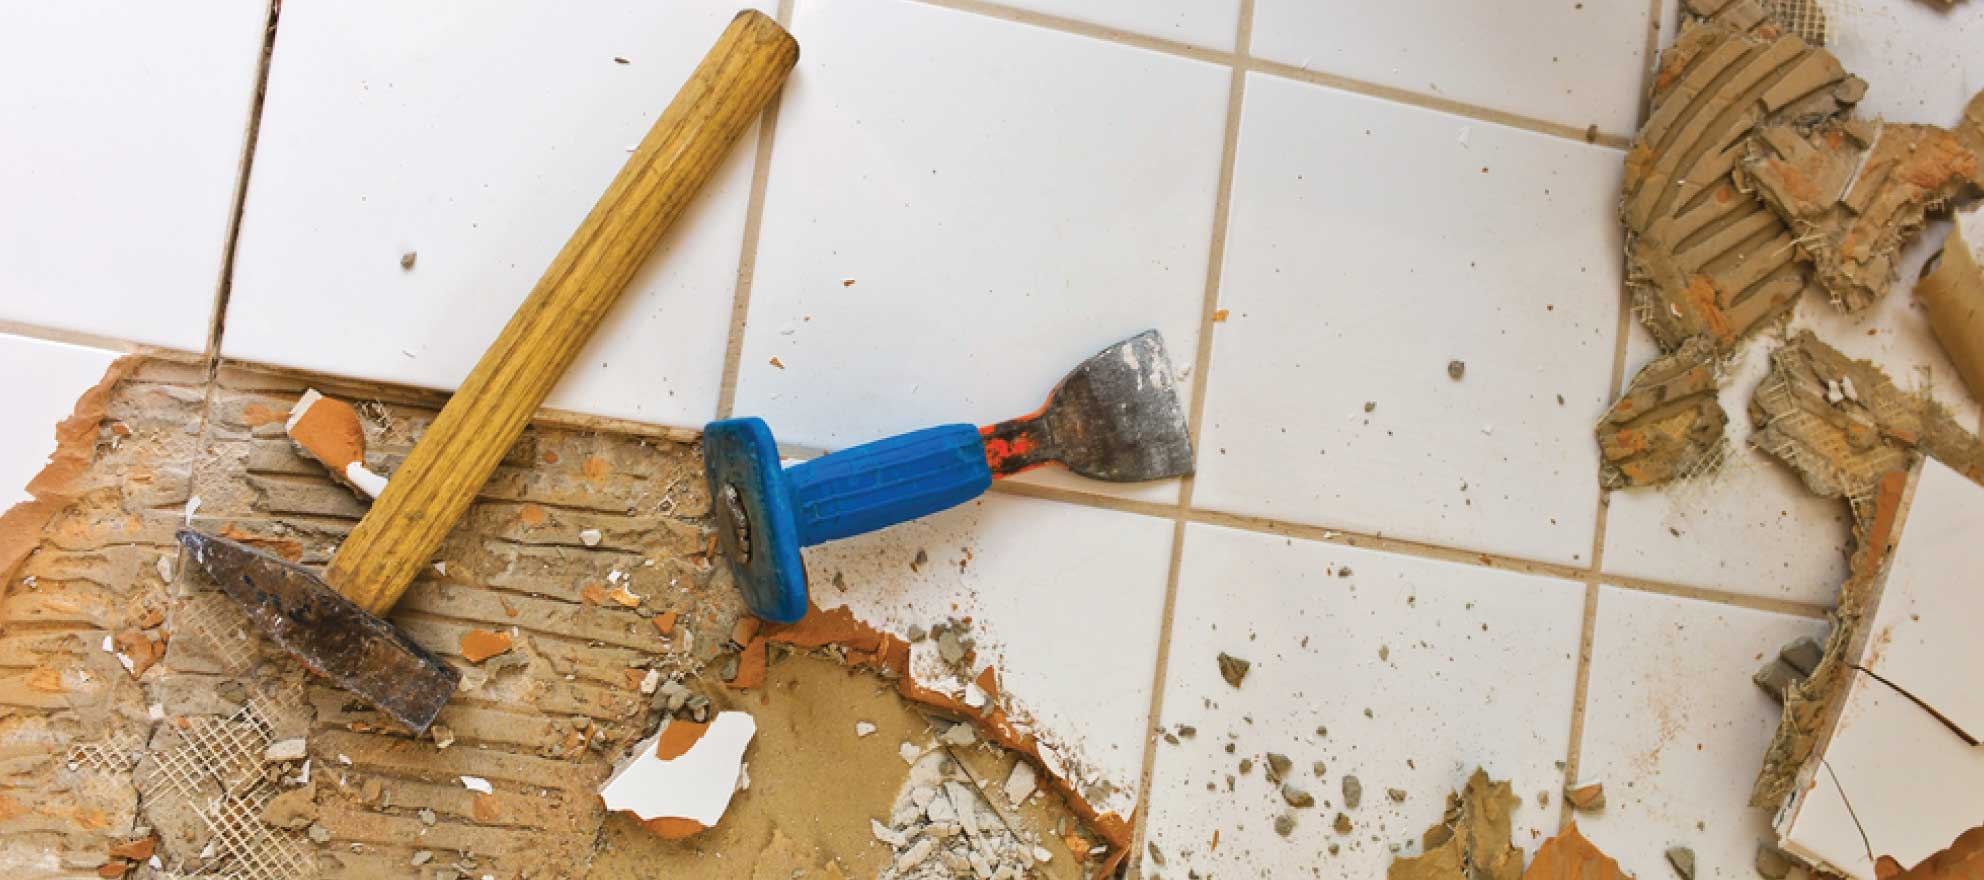 Most homeowners plan to start or continue renovations this year